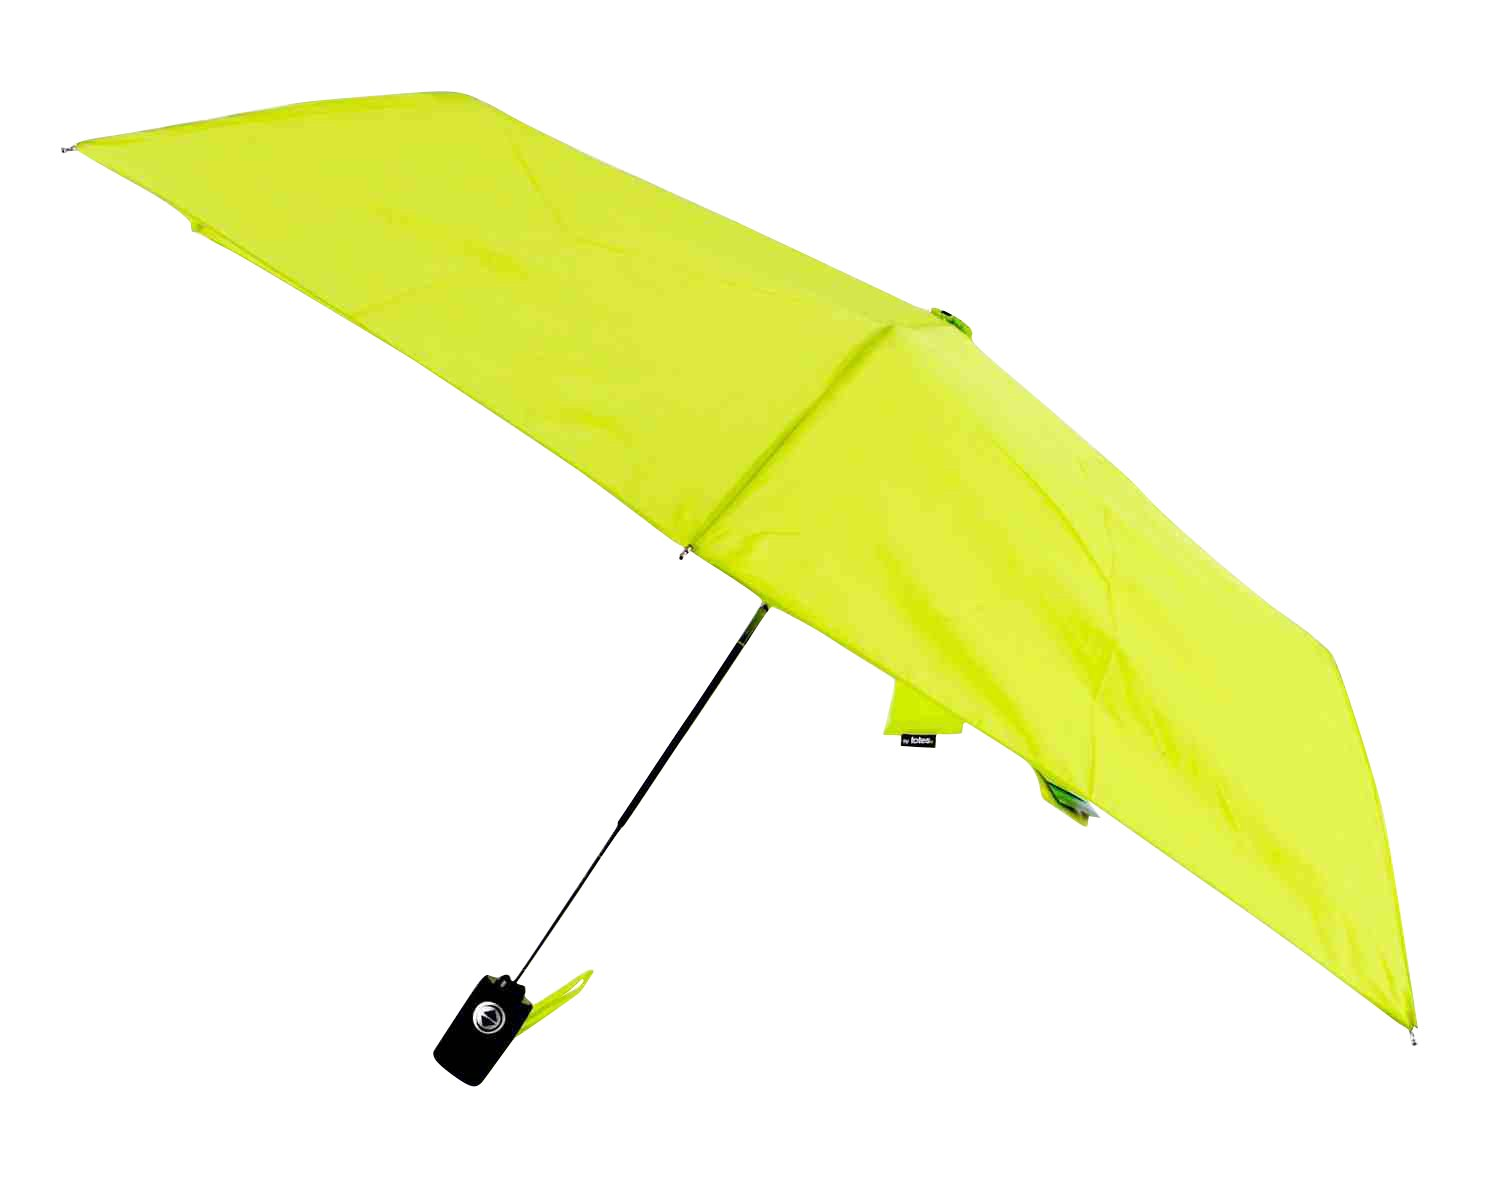 Amazon.com | Raines Automatic Umbrella with 32-inch Canopy Coverage and Nylon Carrying Case, Lime, 3-pack | Umbrellas